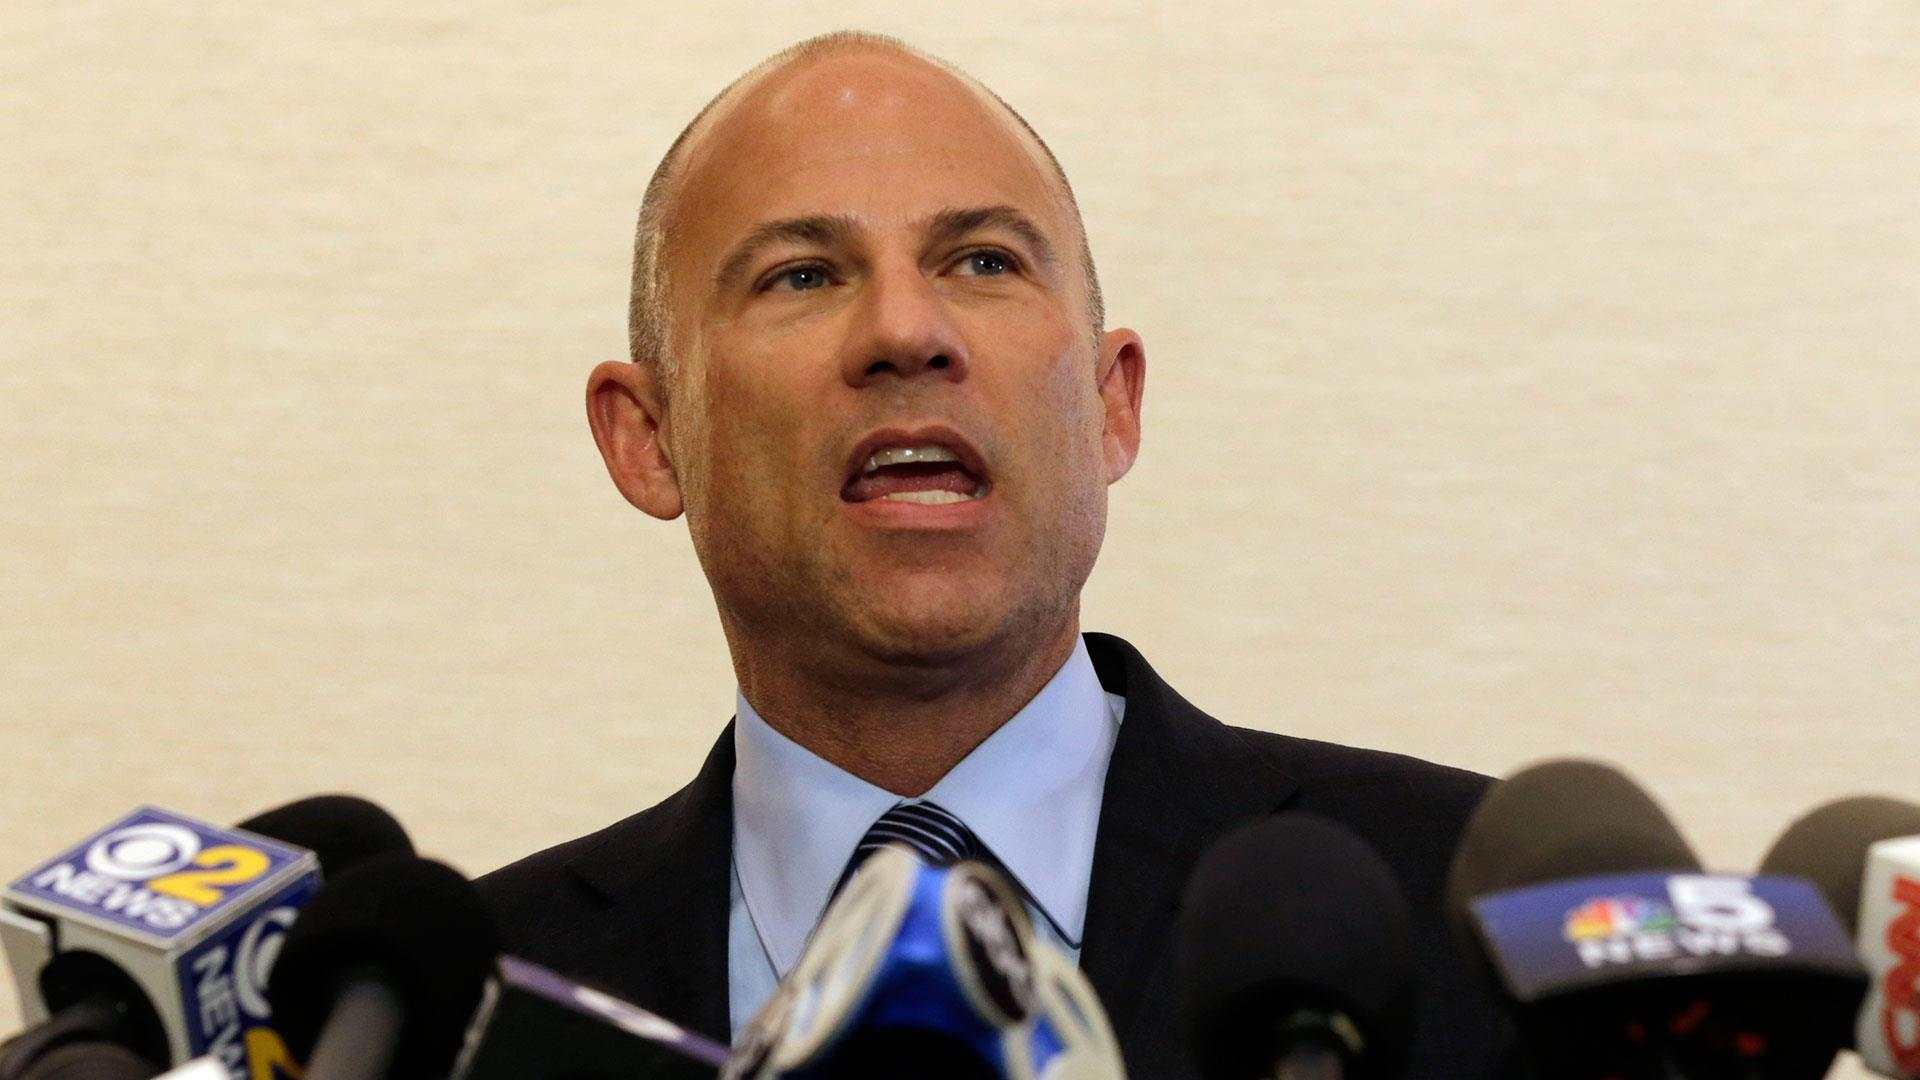 Michael Avenatti describes R. Kelly video allegedly showing him having sex with 14-year-old girl